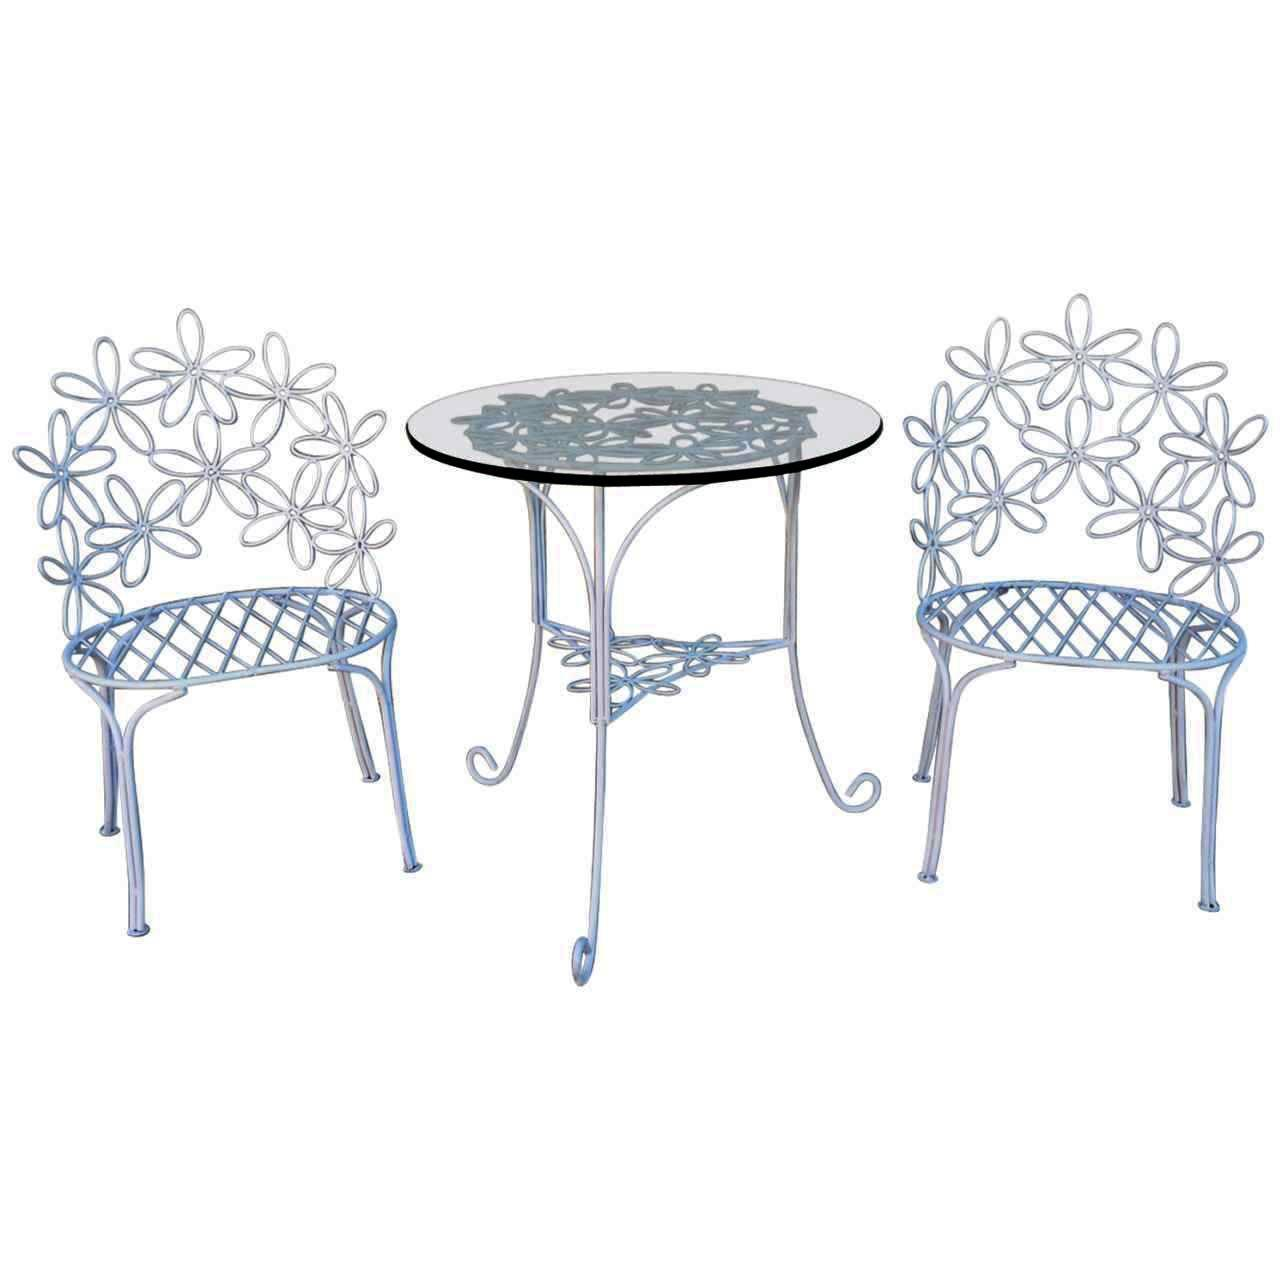 Charming wrought iron patio chairs and table for sale at for Patio table and chairs sale